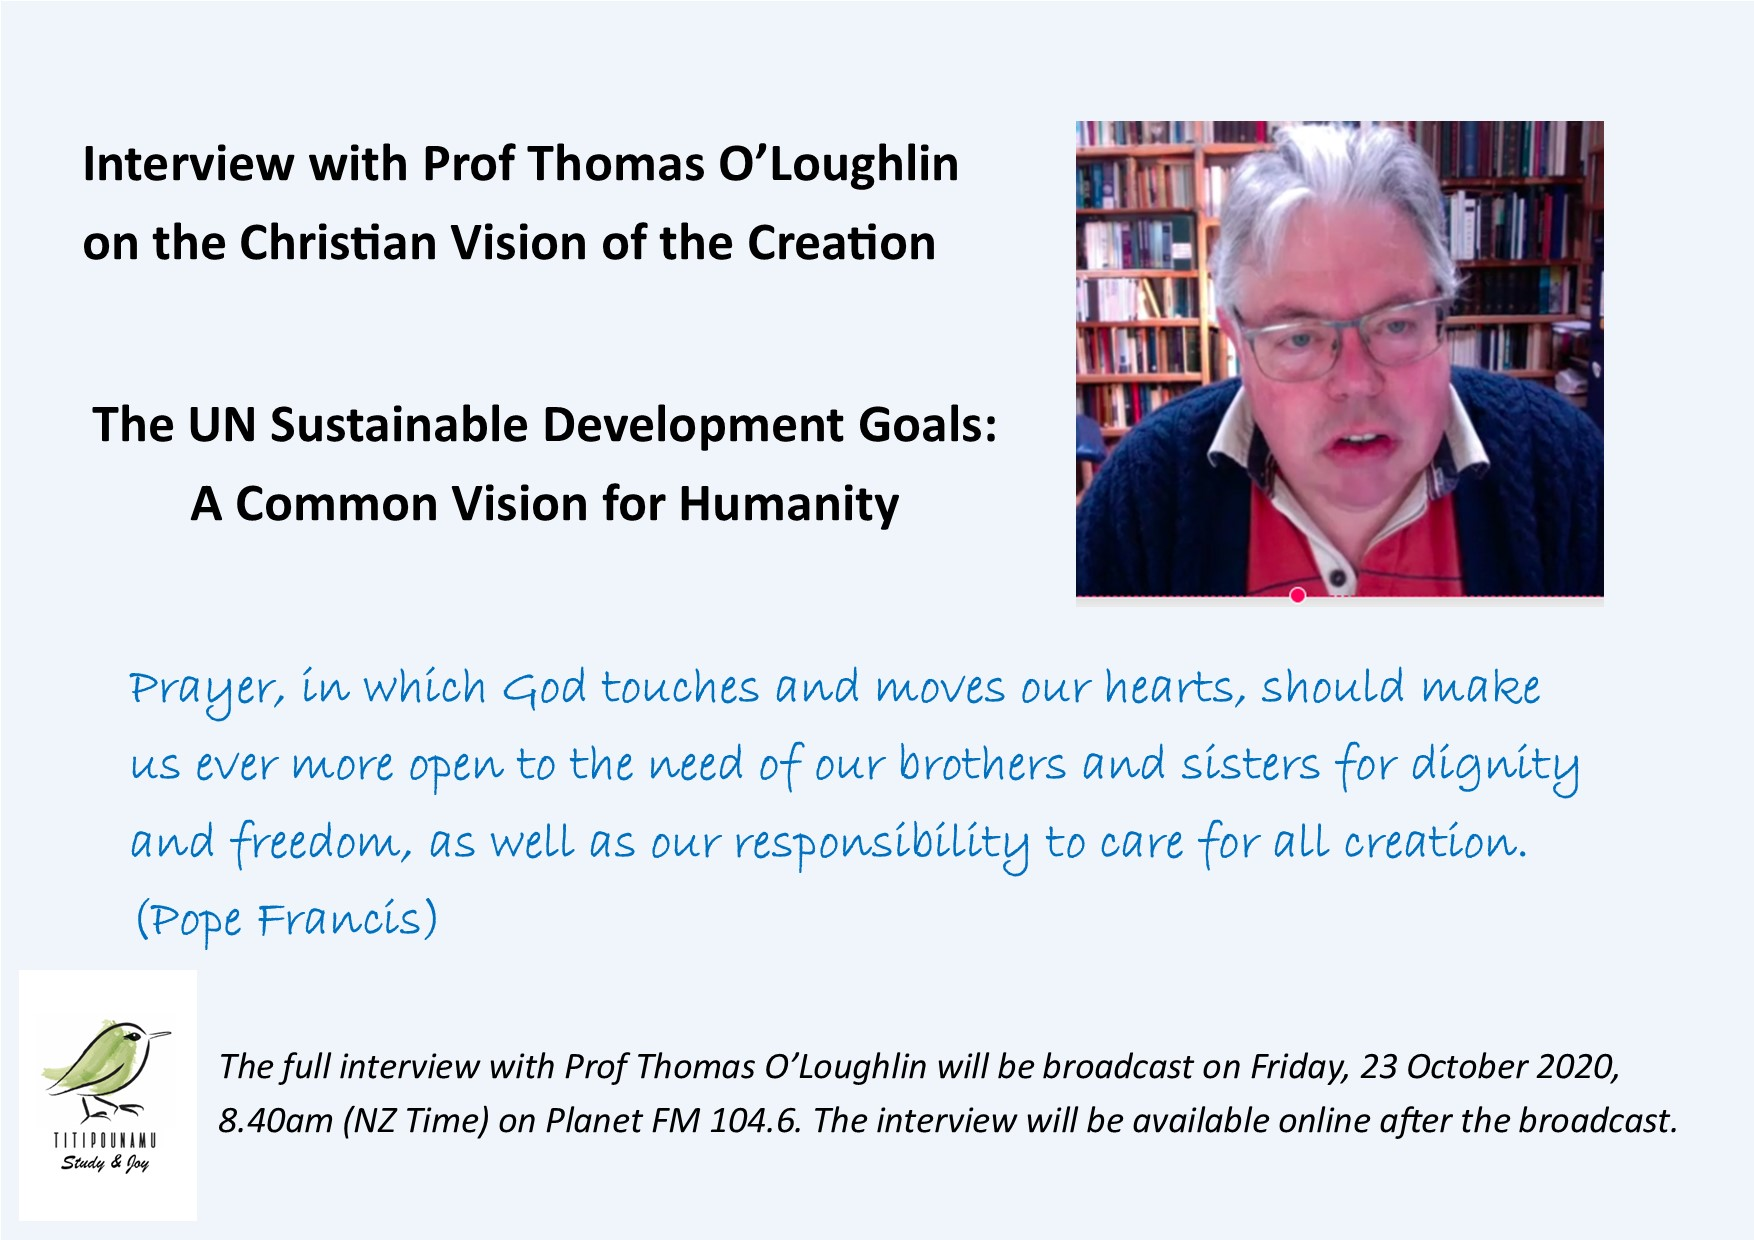 Interview with Prof Thomas O'Loughlin